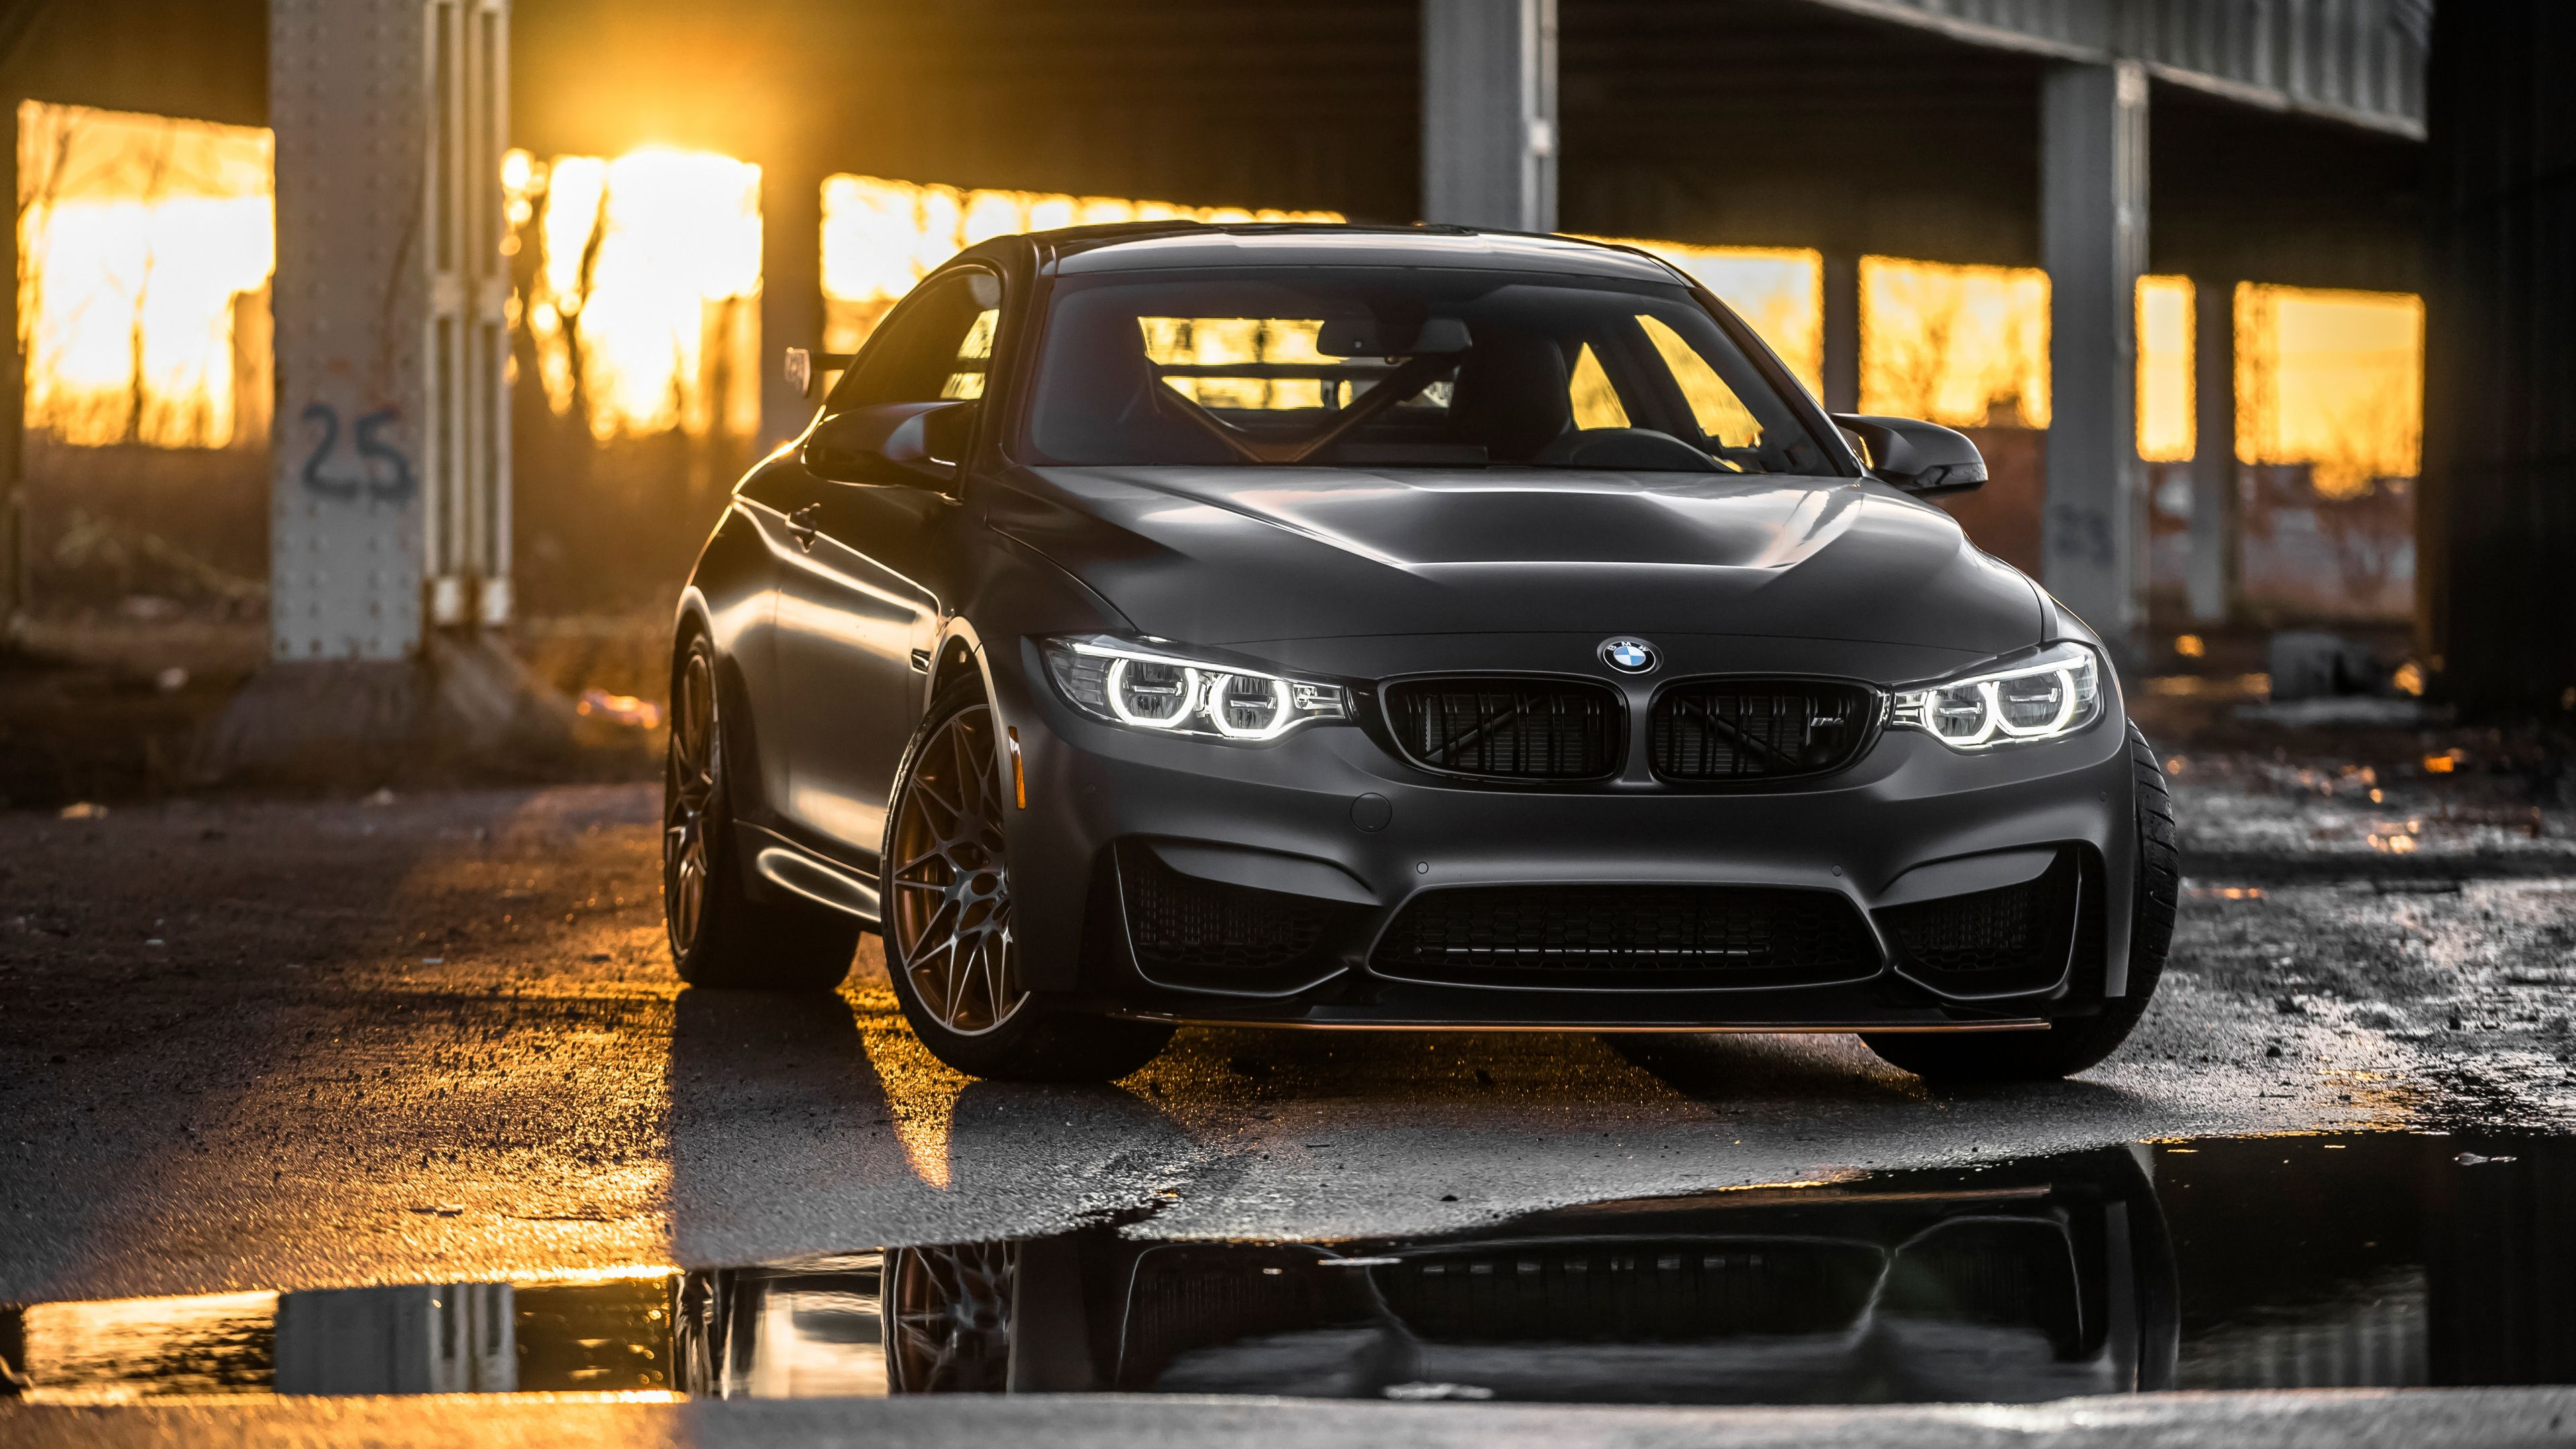 Wallpaper 4k Bmw M4 Gts 4k 4k Wallpapers 5k Wallpapers 8k